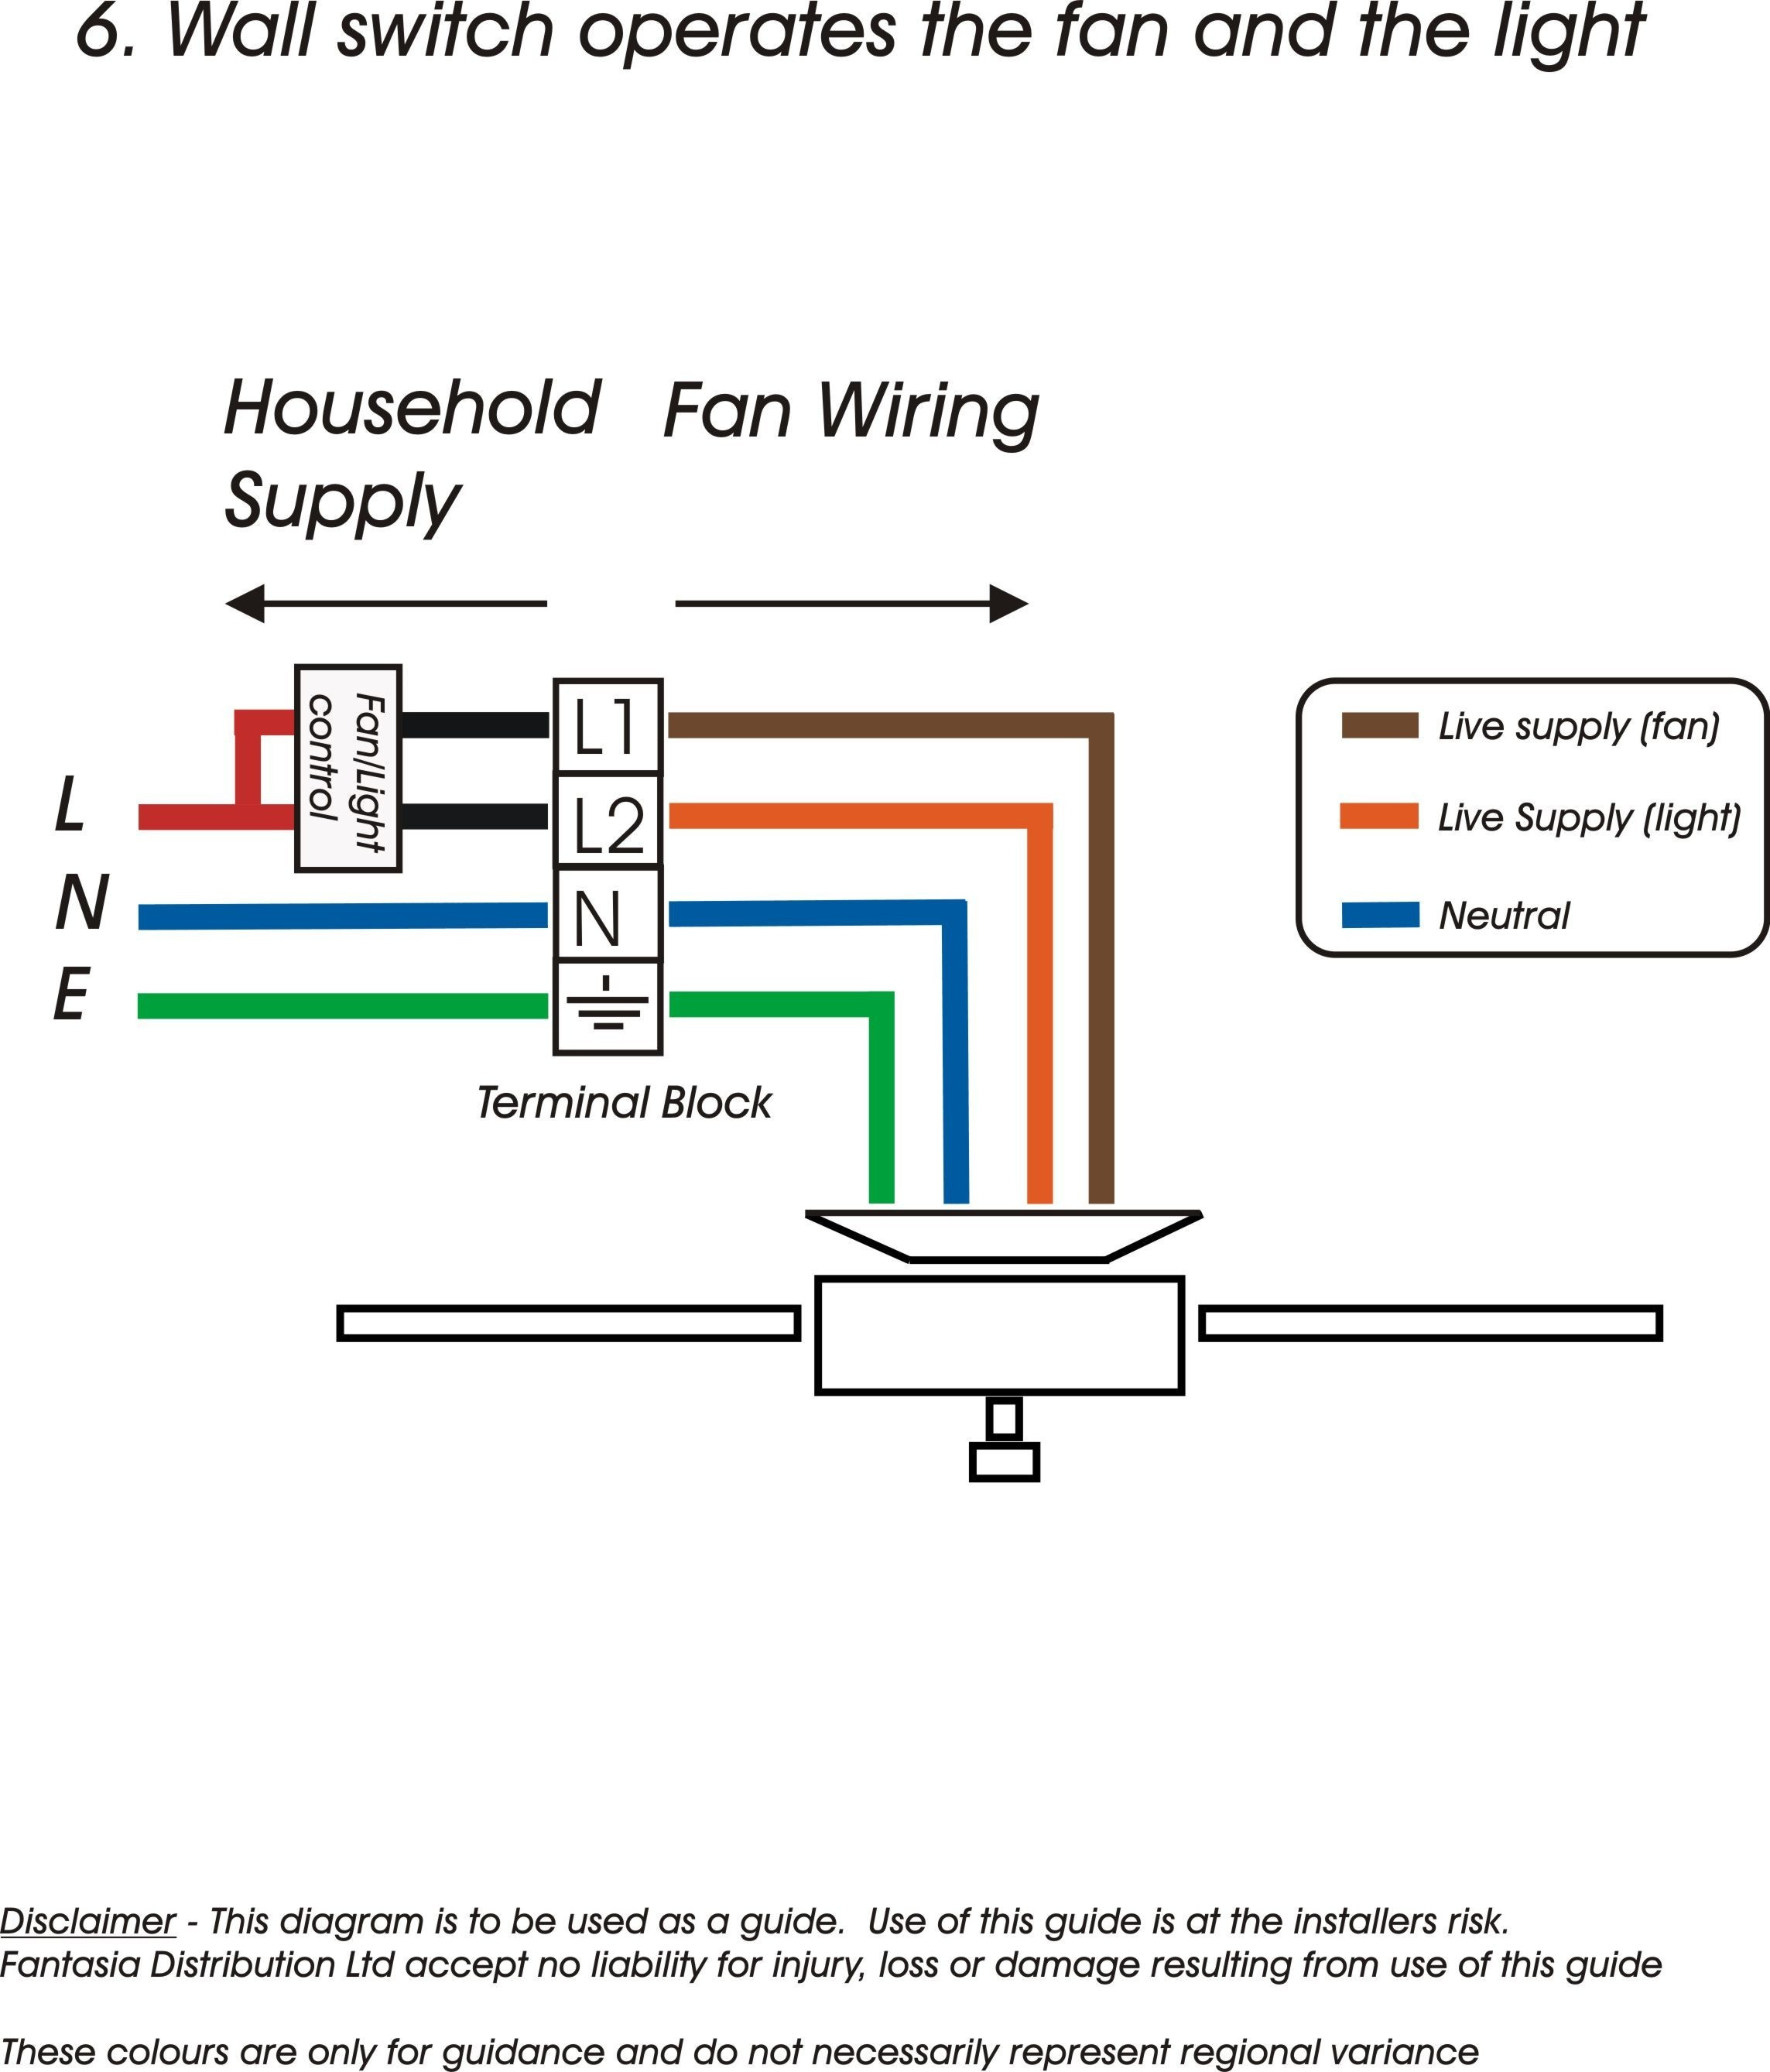 acme transformer t 1 81051 wiring diagram Download-fan wiring diagram Download Australian Light Wiring Diagram Inspirationa How To Wire A Light With DOWNLOAD Wiring Diagram 8-o